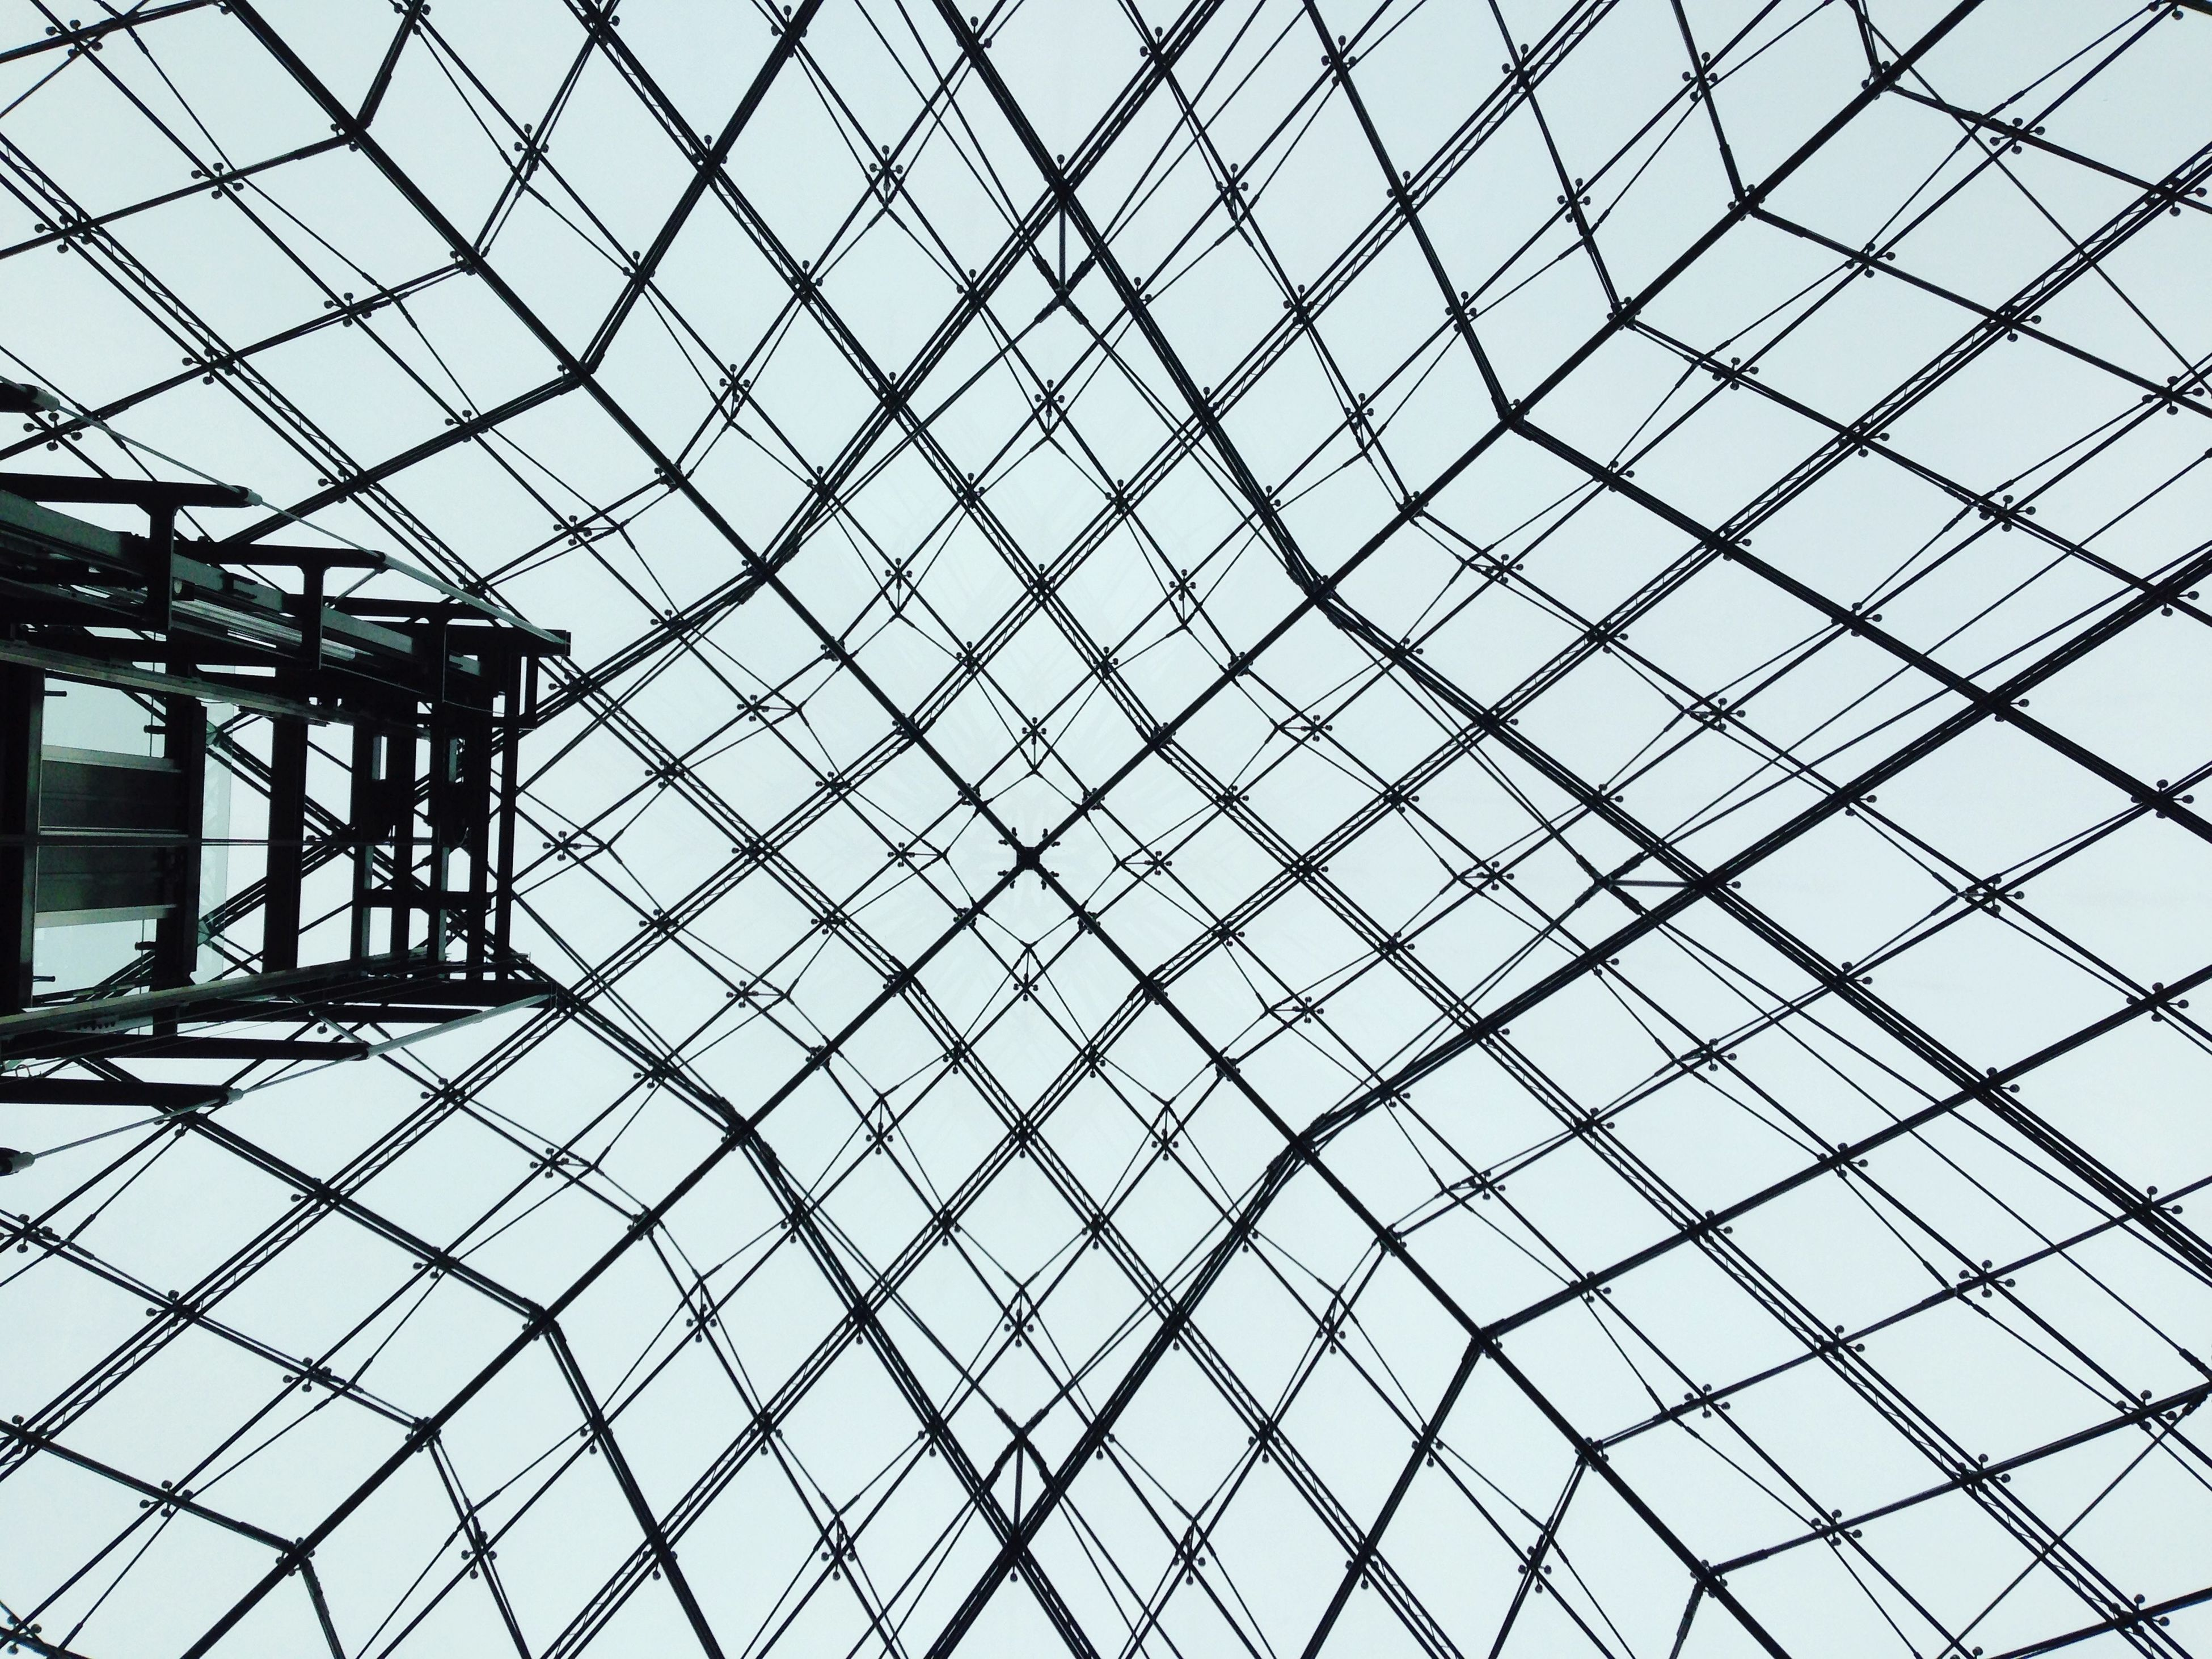 architecture, built structure, low angle view, glass - material, pattern, modern, ceiling, architectural feature, design, indoors, full frame, famous place, backgrounds, skylight, geometric shape, sky, building exterior, reflection, international landmark, travel destinations